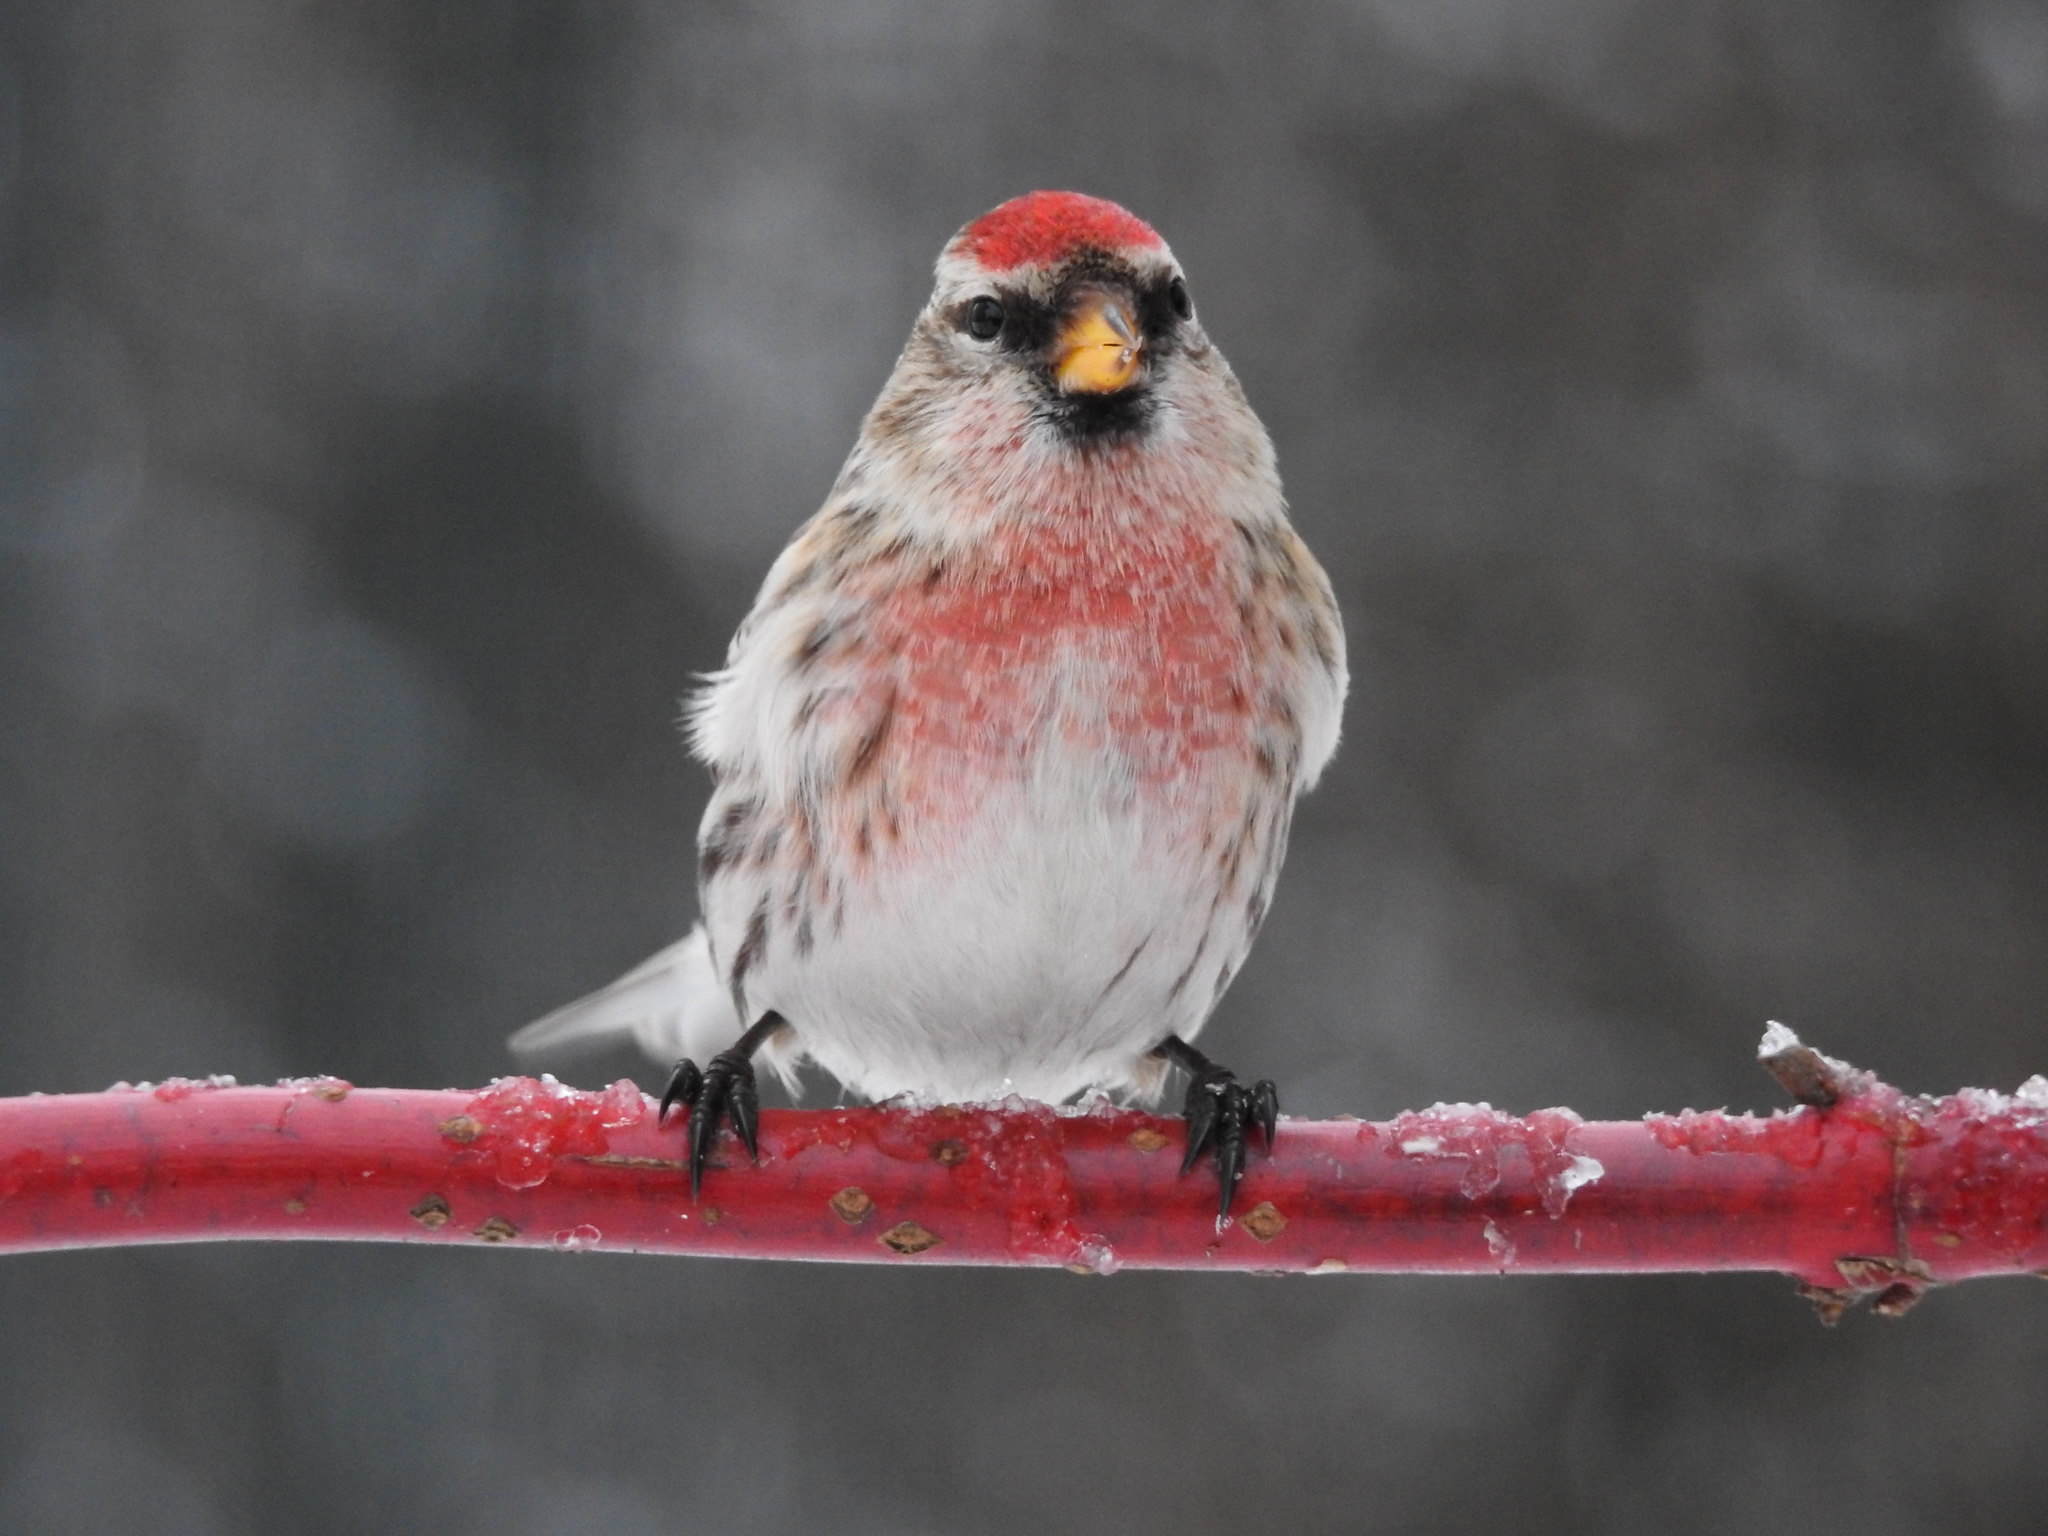 Common Redpoll ♂ (Acanthis flammea)